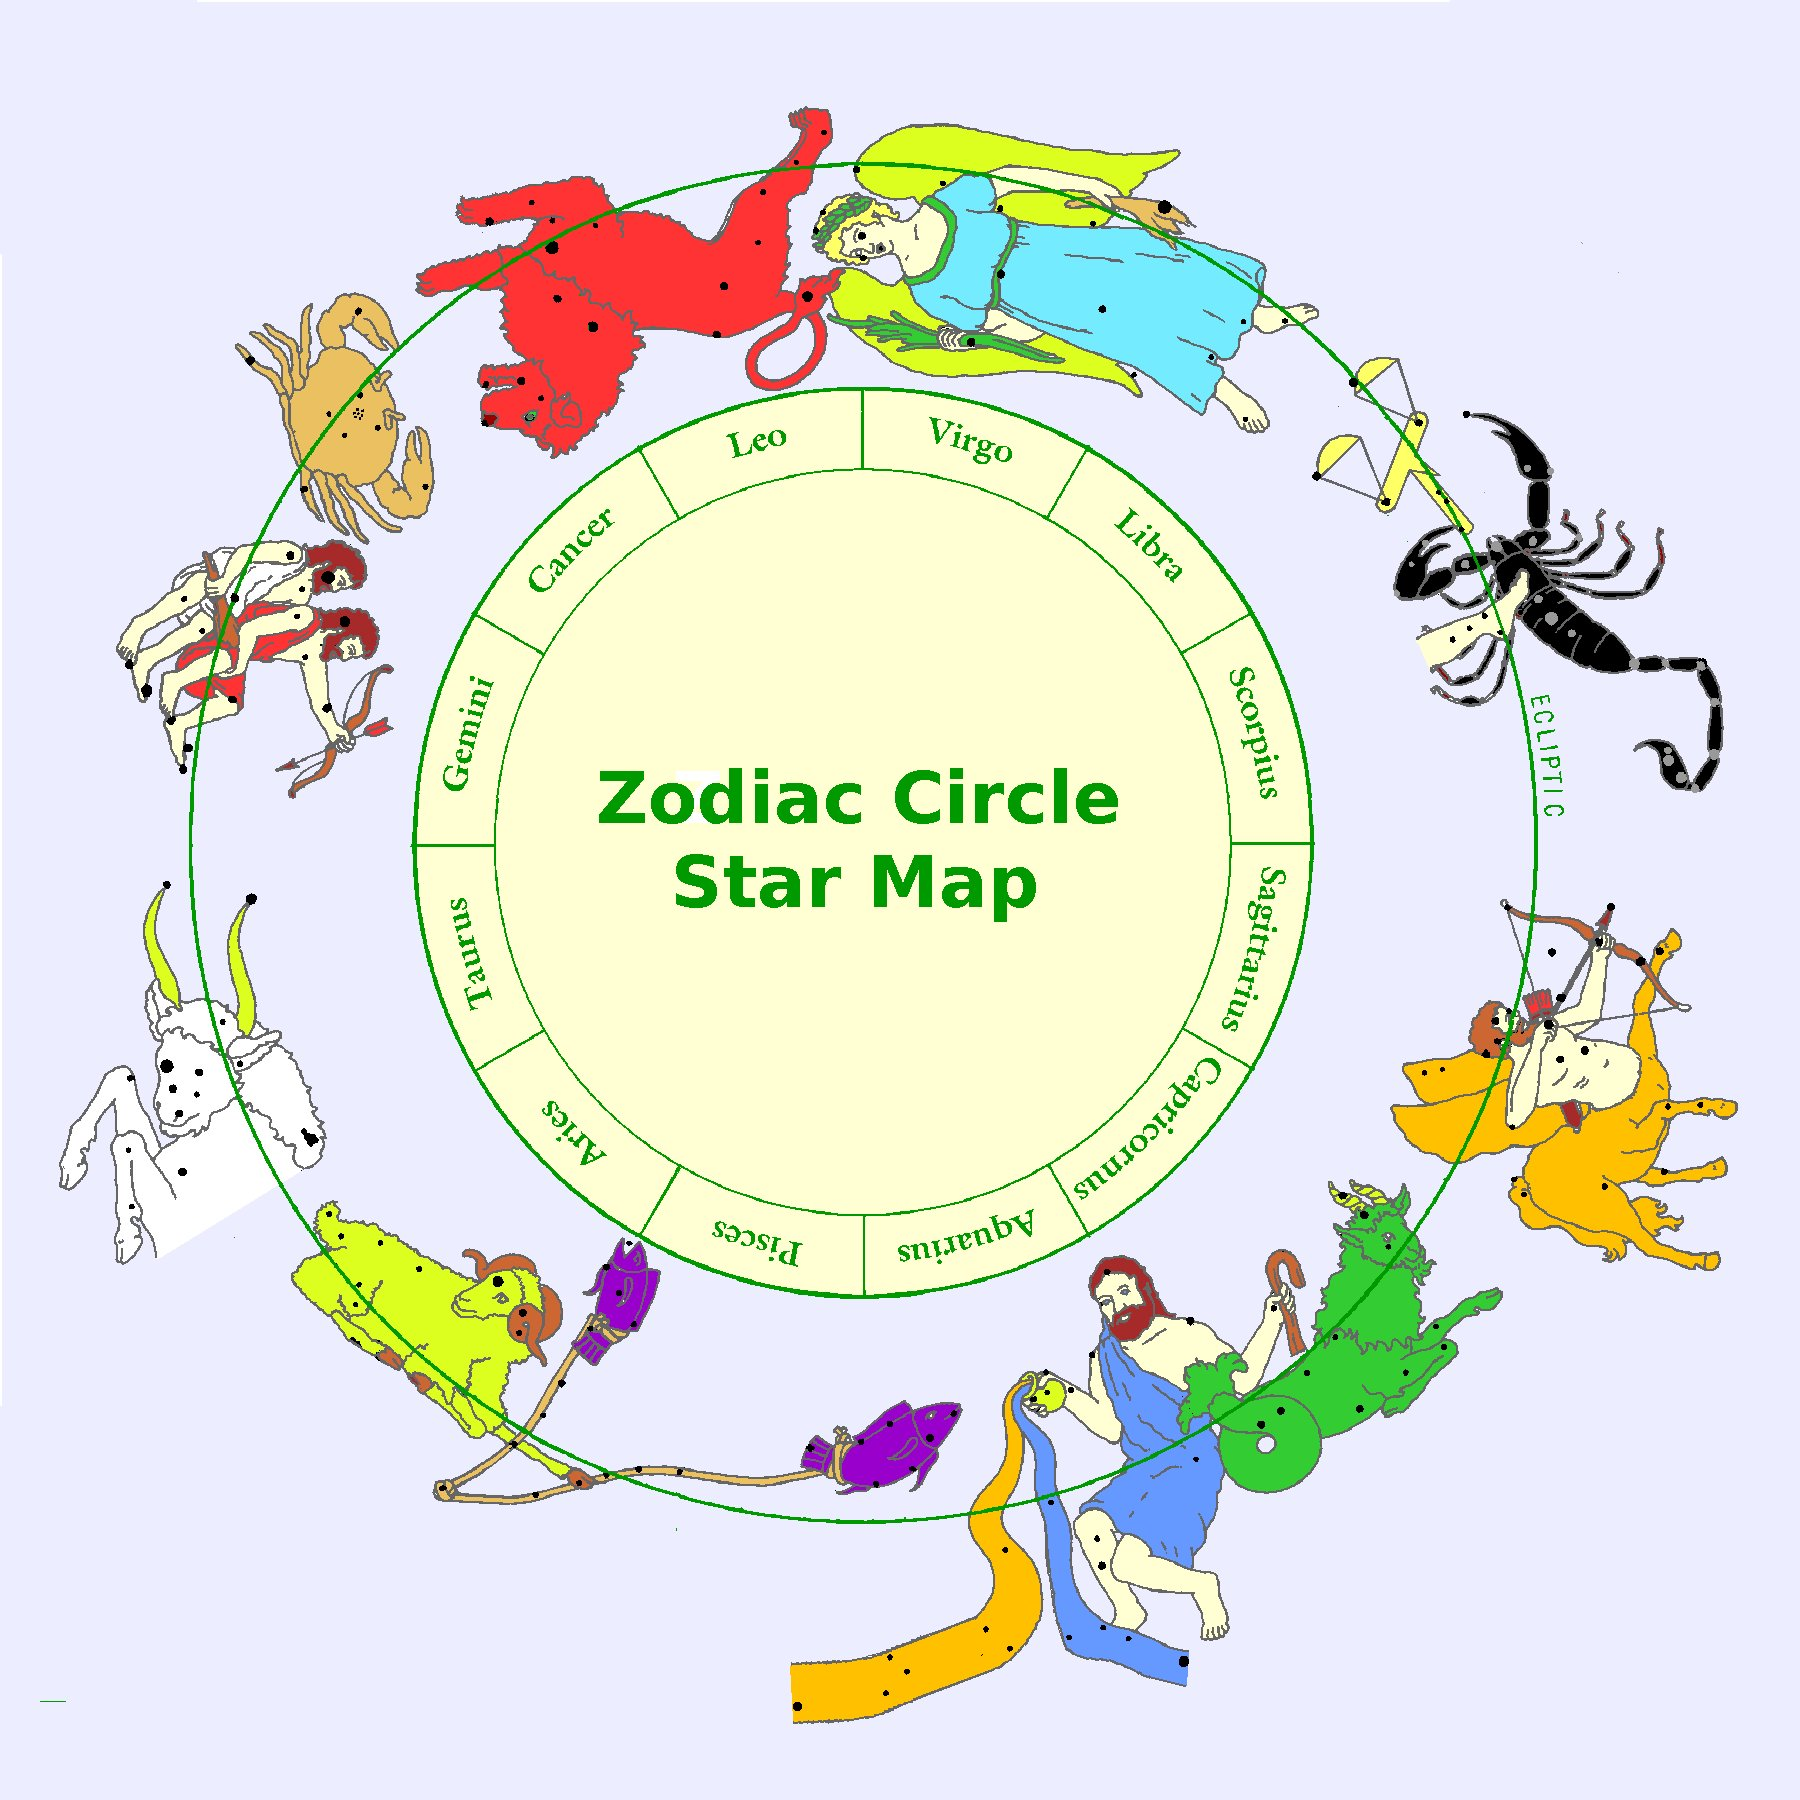 Zodiac Stars - Zodiac constellations map